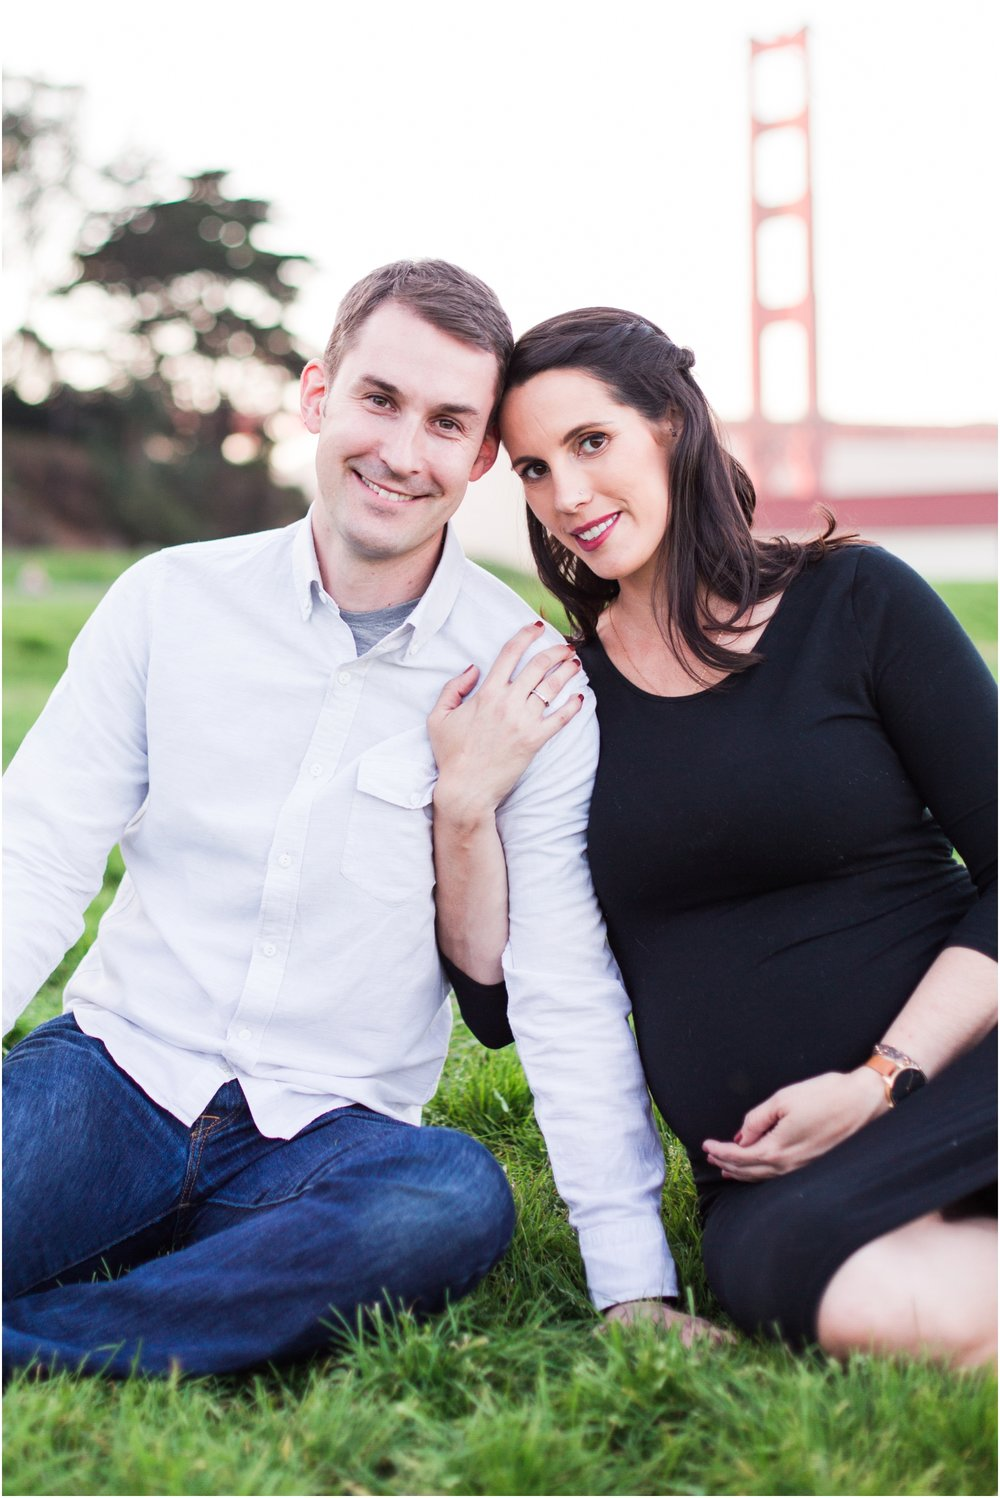 Crissy Field San Francisco maternity pictures by Briana Calderon Photography_0286.jpg